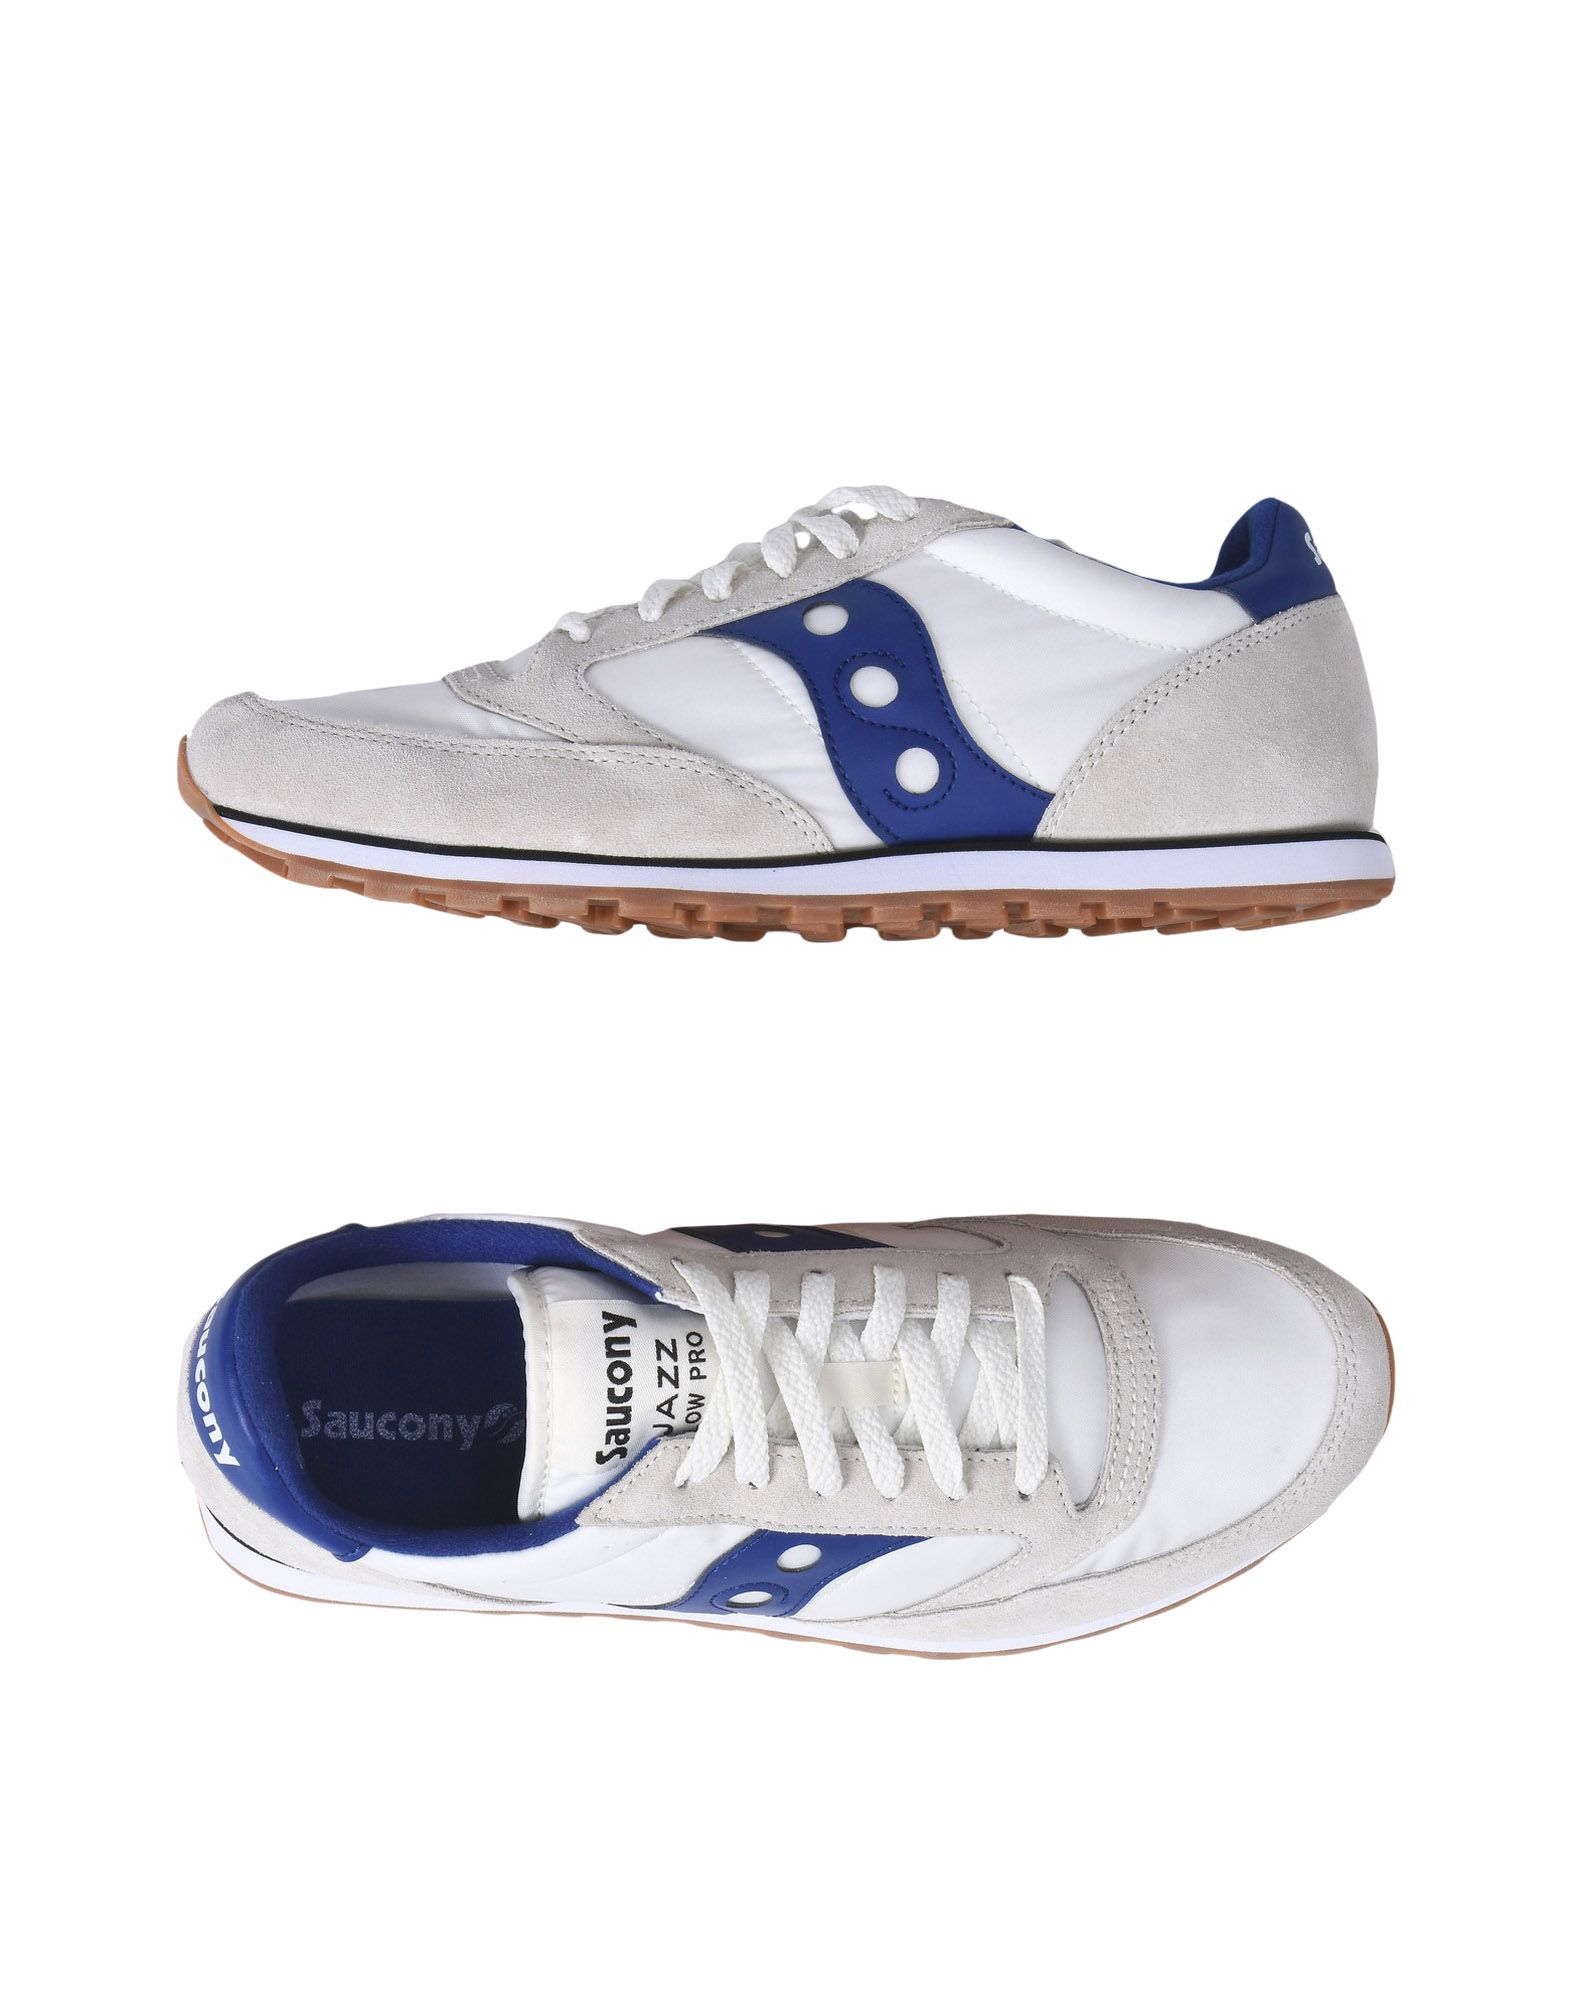 Sneakers Saucony Jazz Low Pro - Homme - Sneakers Saucony sur